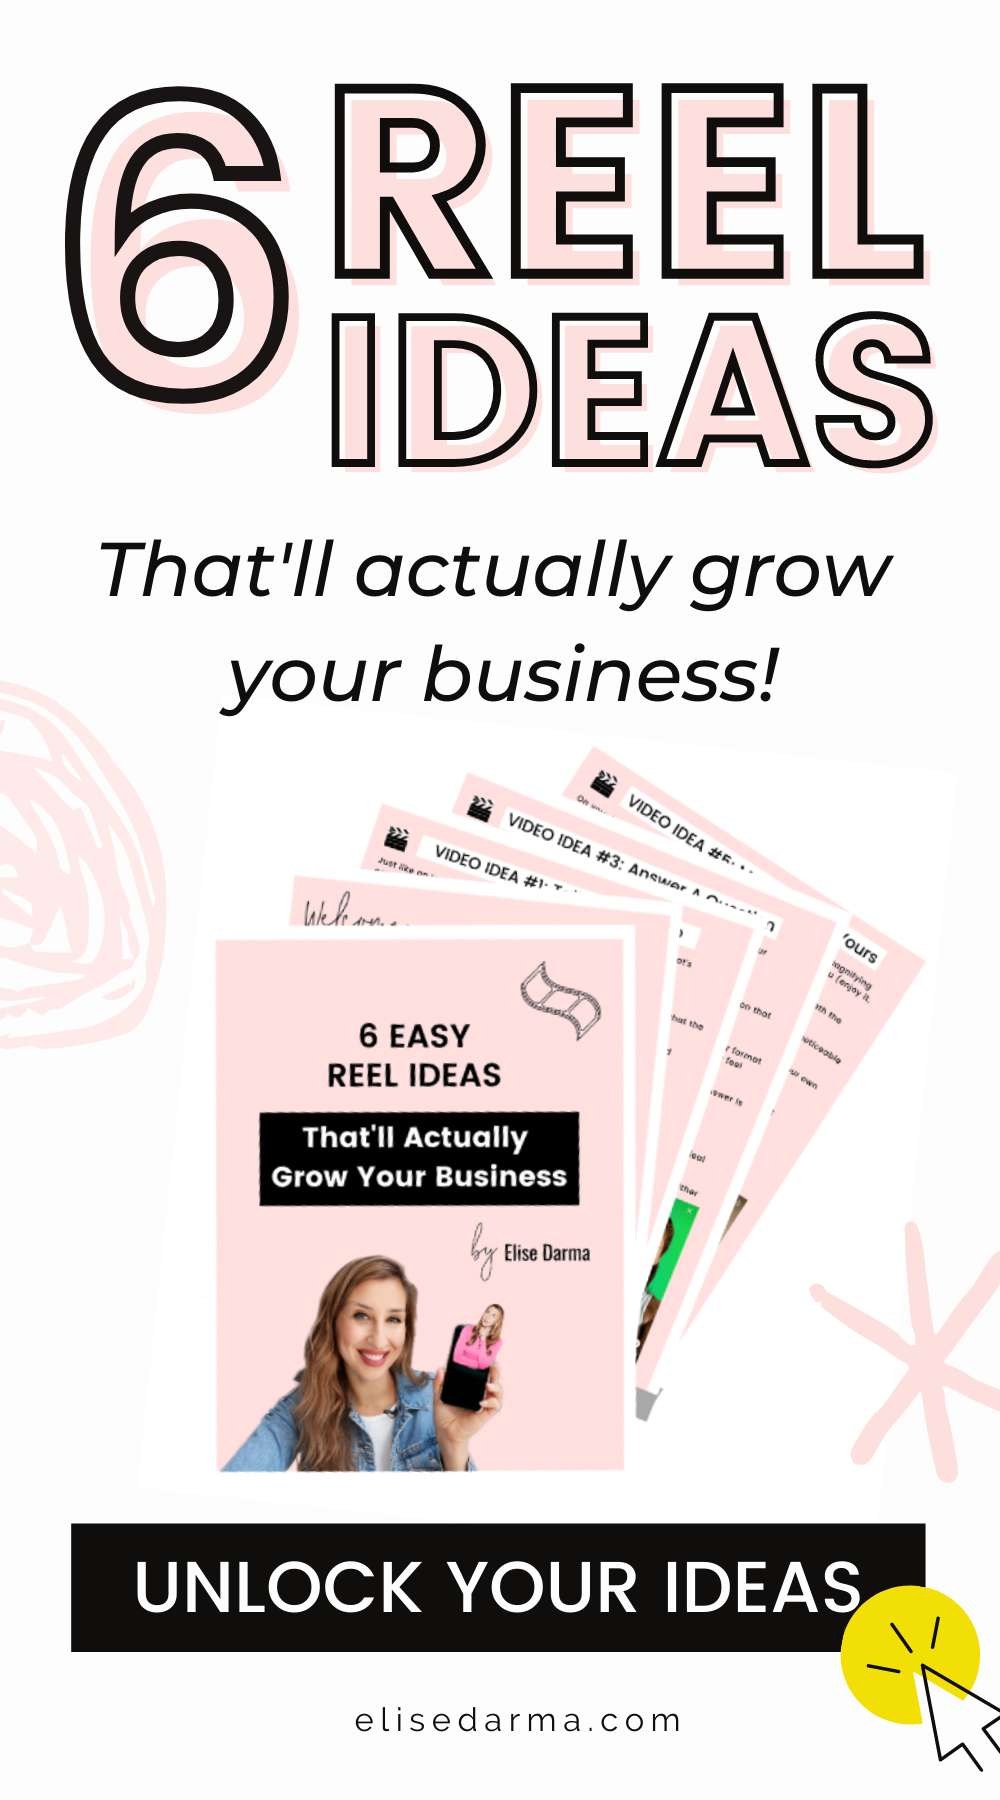 6 Free Reel Ideas That Ll Grow Your Business Instagram Business Business Checklist Marketing Strategy Social Media